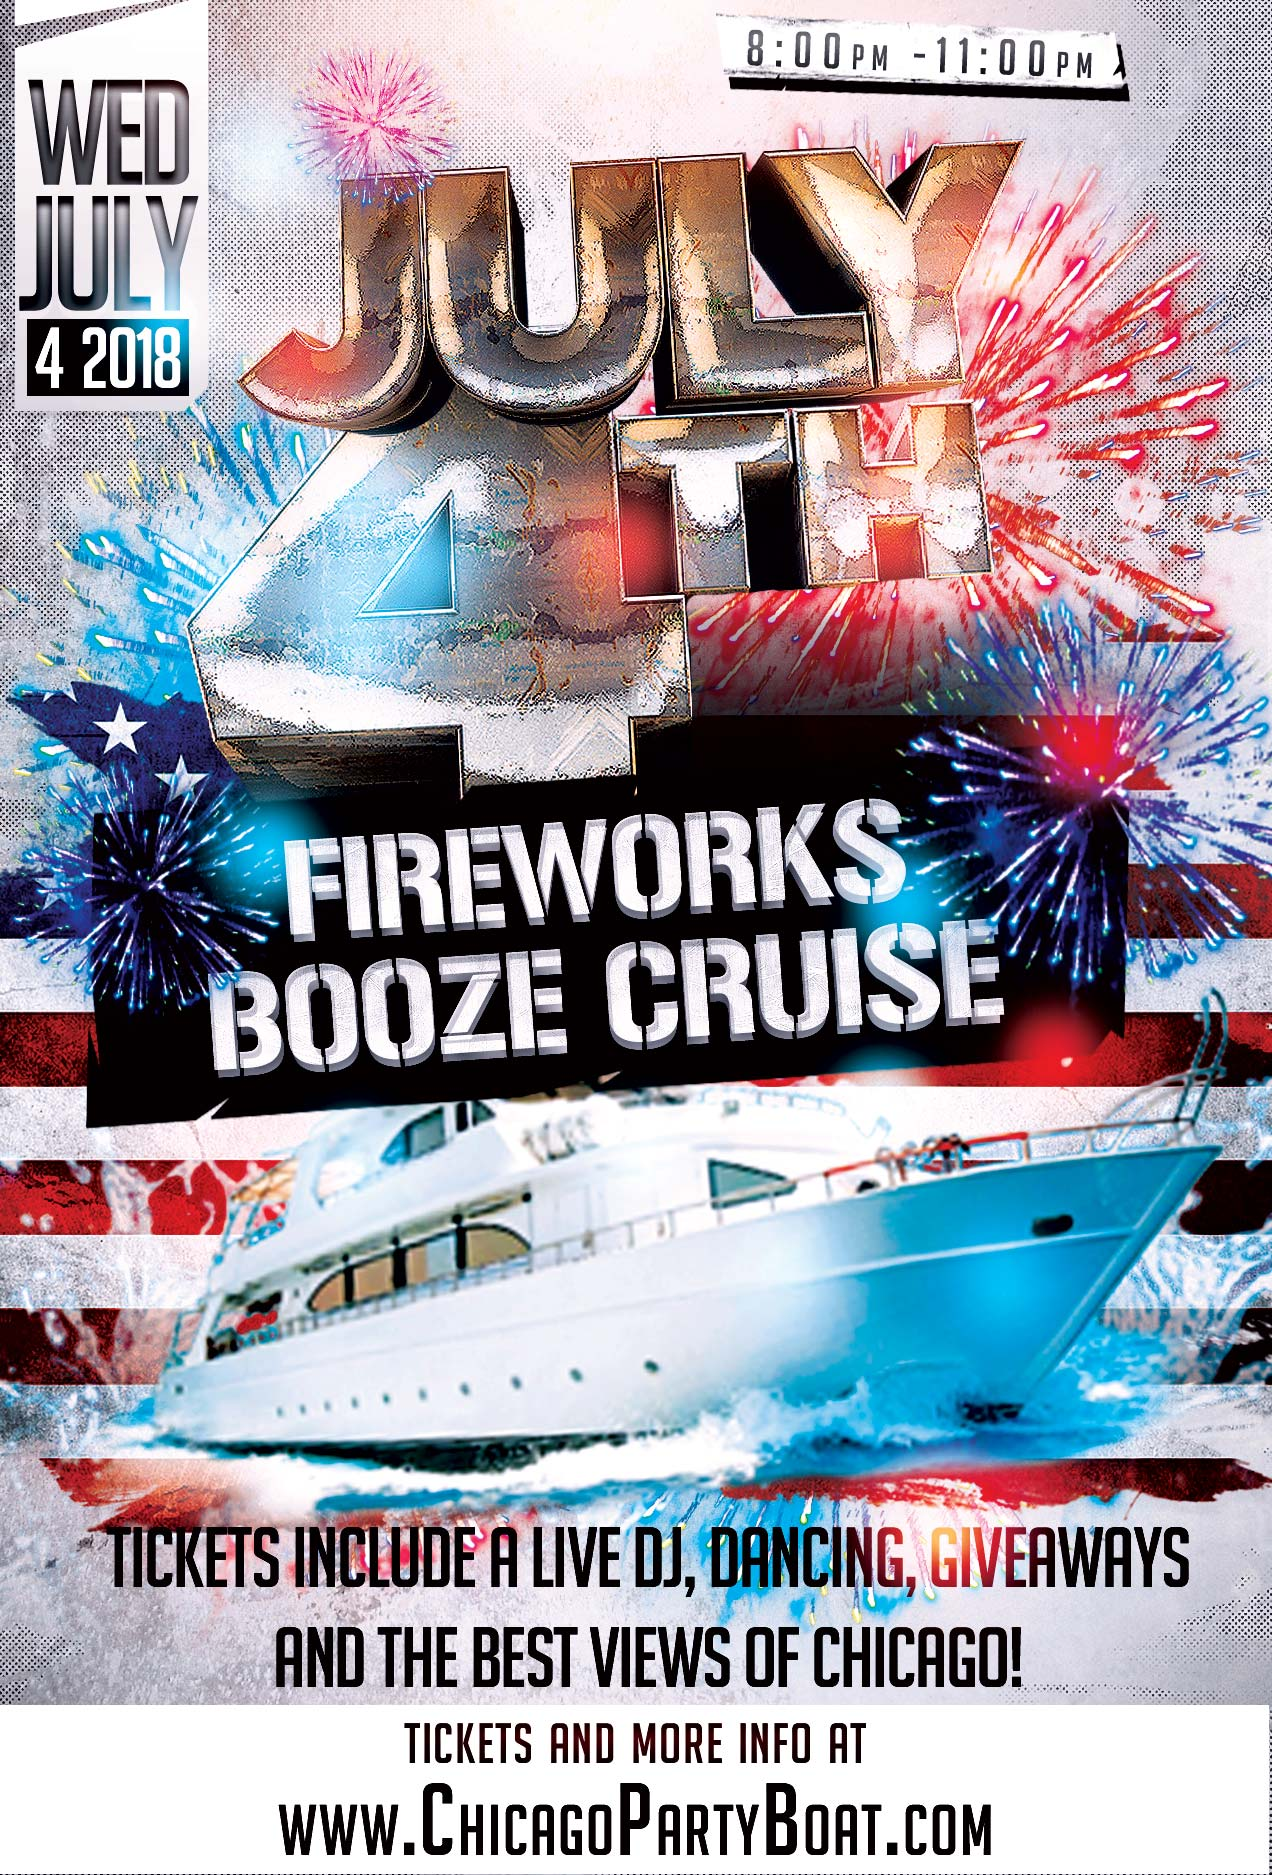 July 4th Independence Day Party Fireworks Booze Cruise - Tickets include a Live DJ, Dancing, Giveaways, and the best views of Chicago!